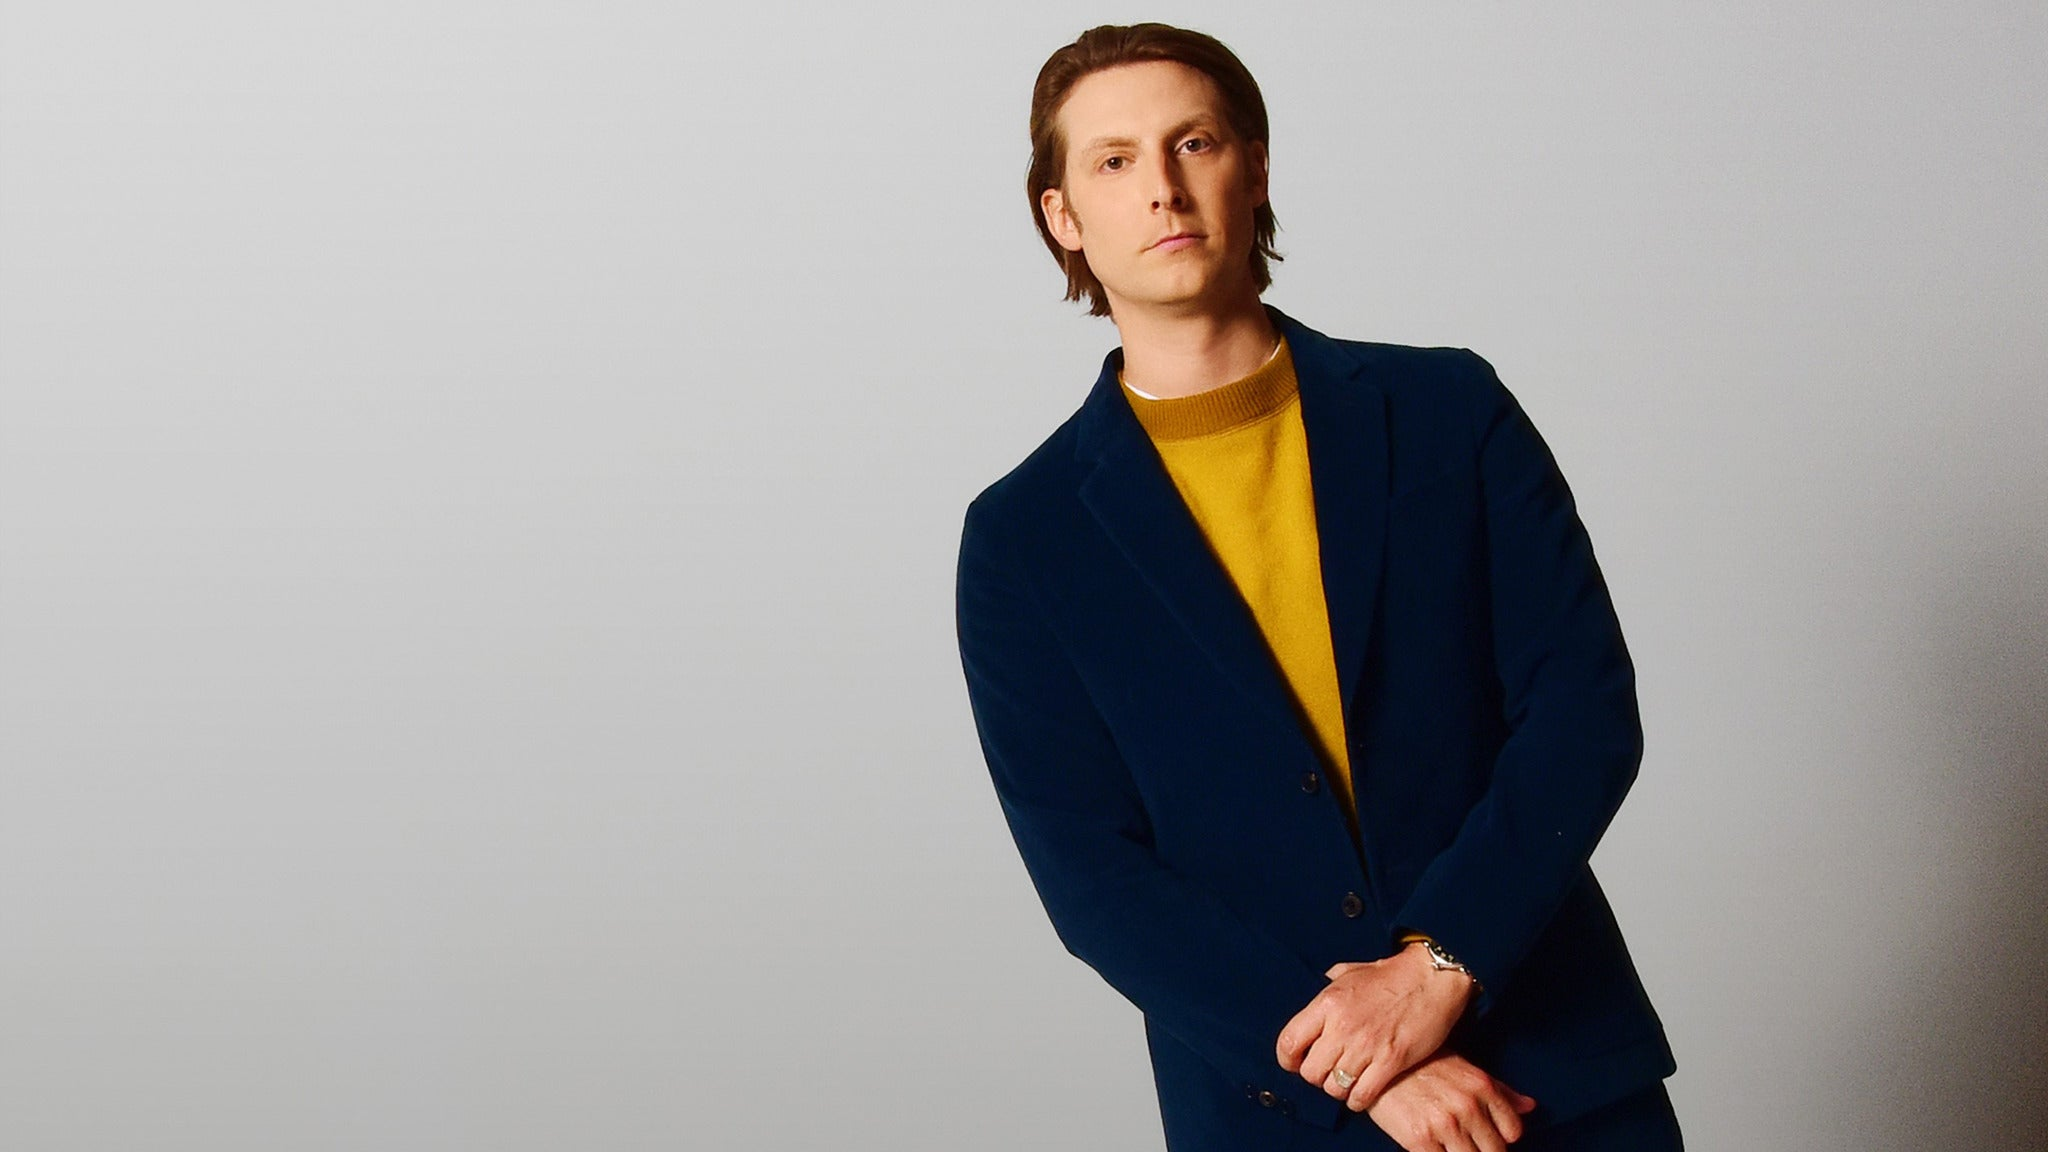 SORRY, THIS EVENT IS NO LONGER ACTIVE<br>Eric Hutchinson at Aggie Theater - Fort Collins, CO 80524